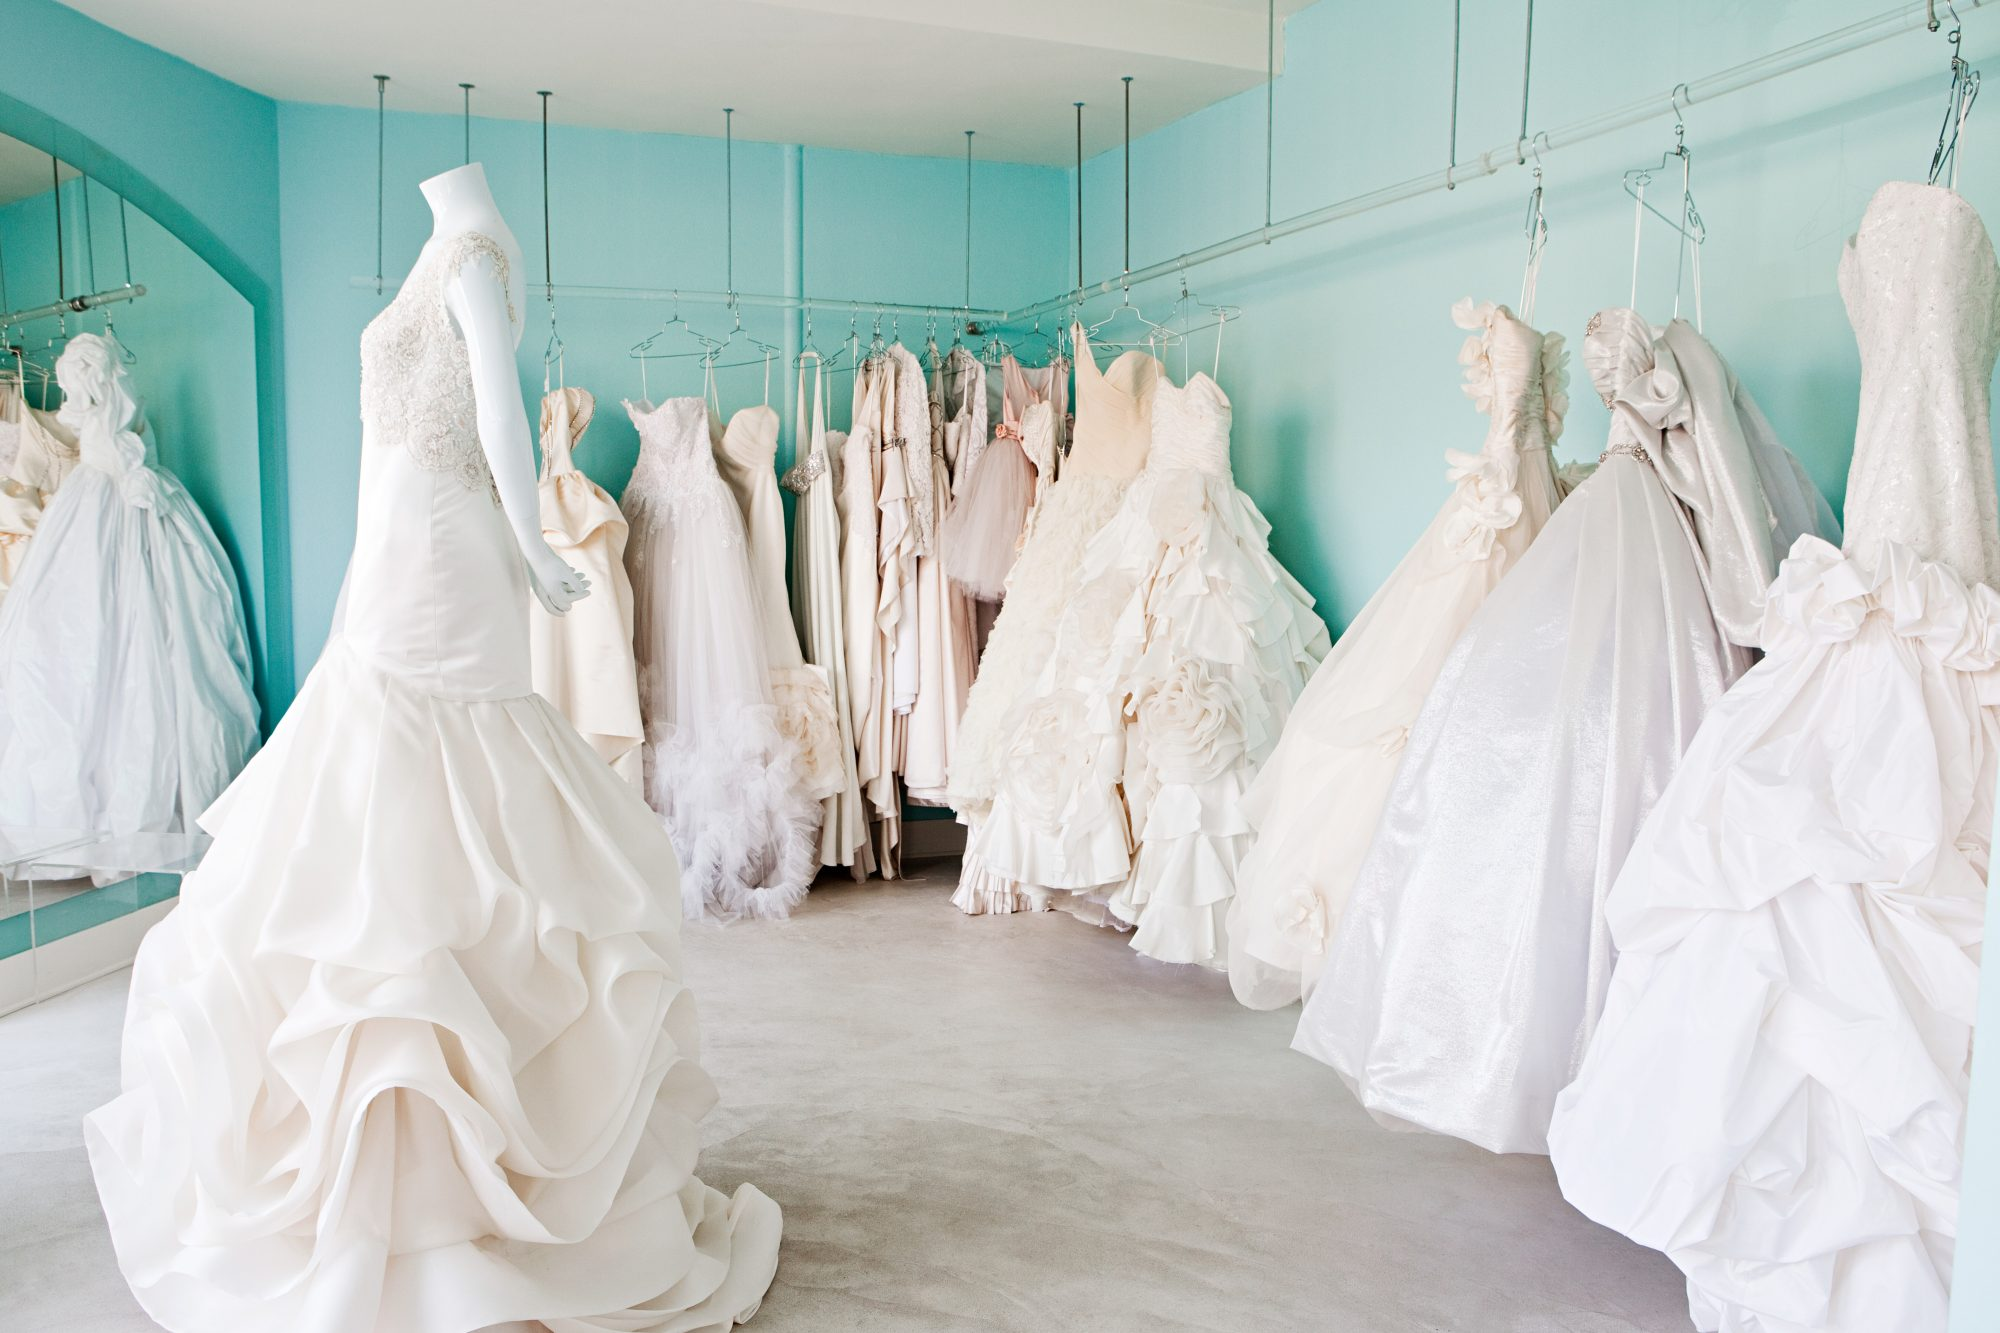 088ef37005e Camille s of Wilmington Saves Wedding Dresses from Hurricane Florence-  Southern Living